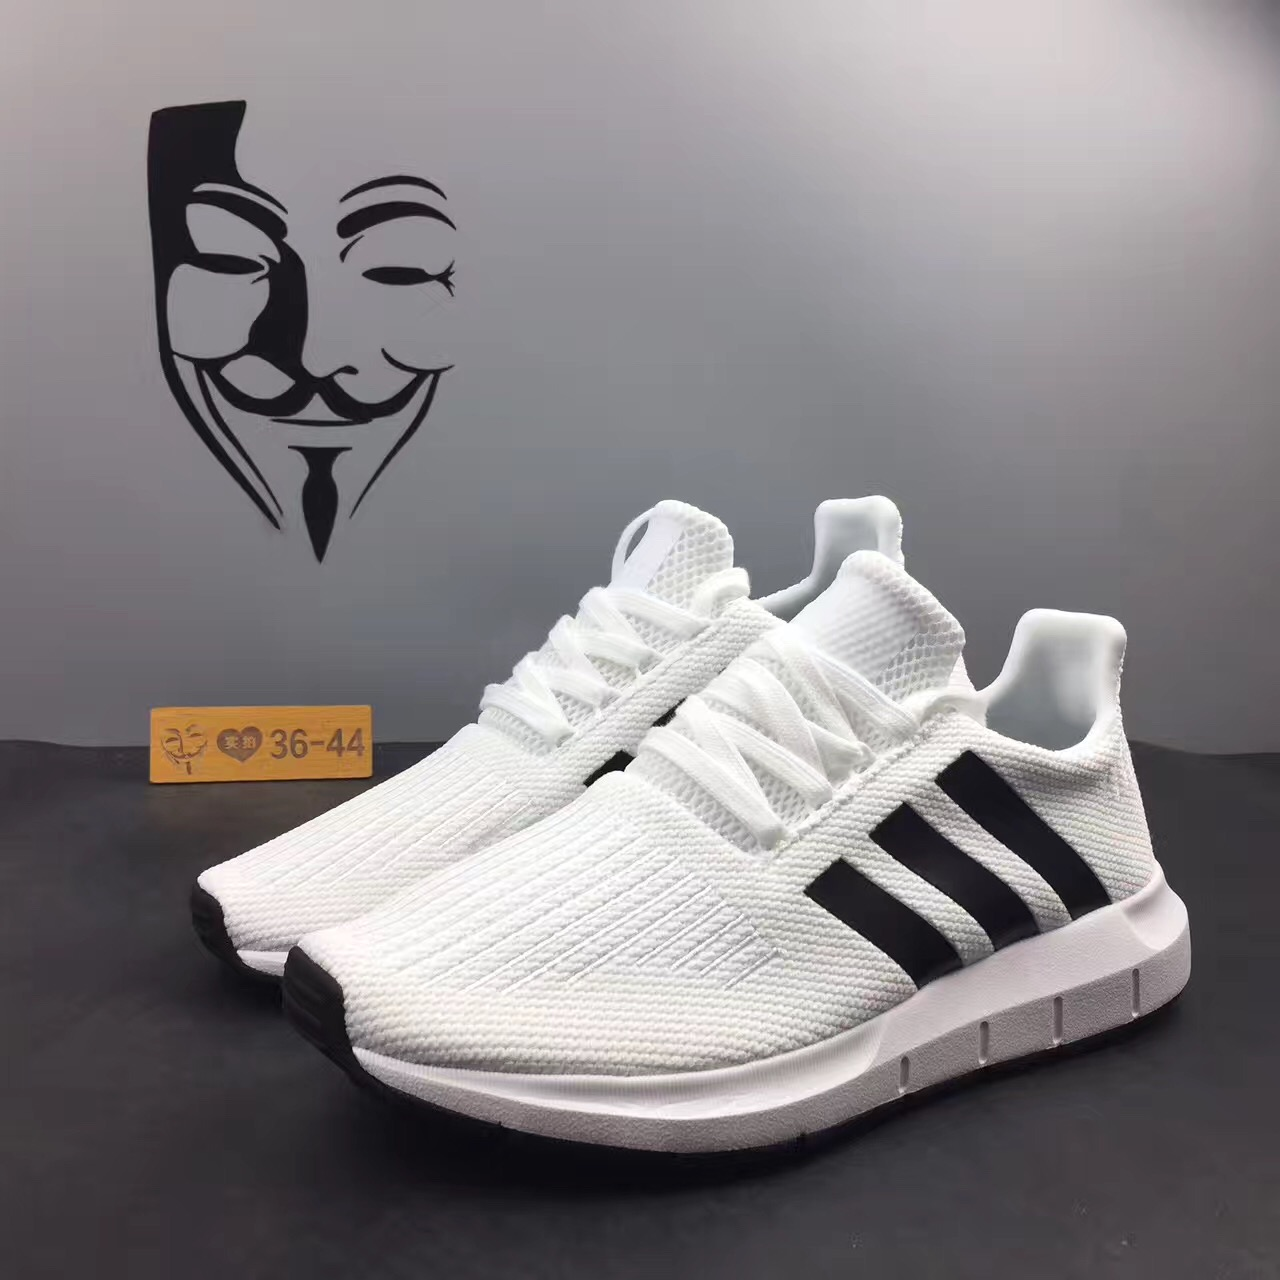 33a315d90c419 Fashion Originals running shoes White Men s women s casual shoes on Storenvy